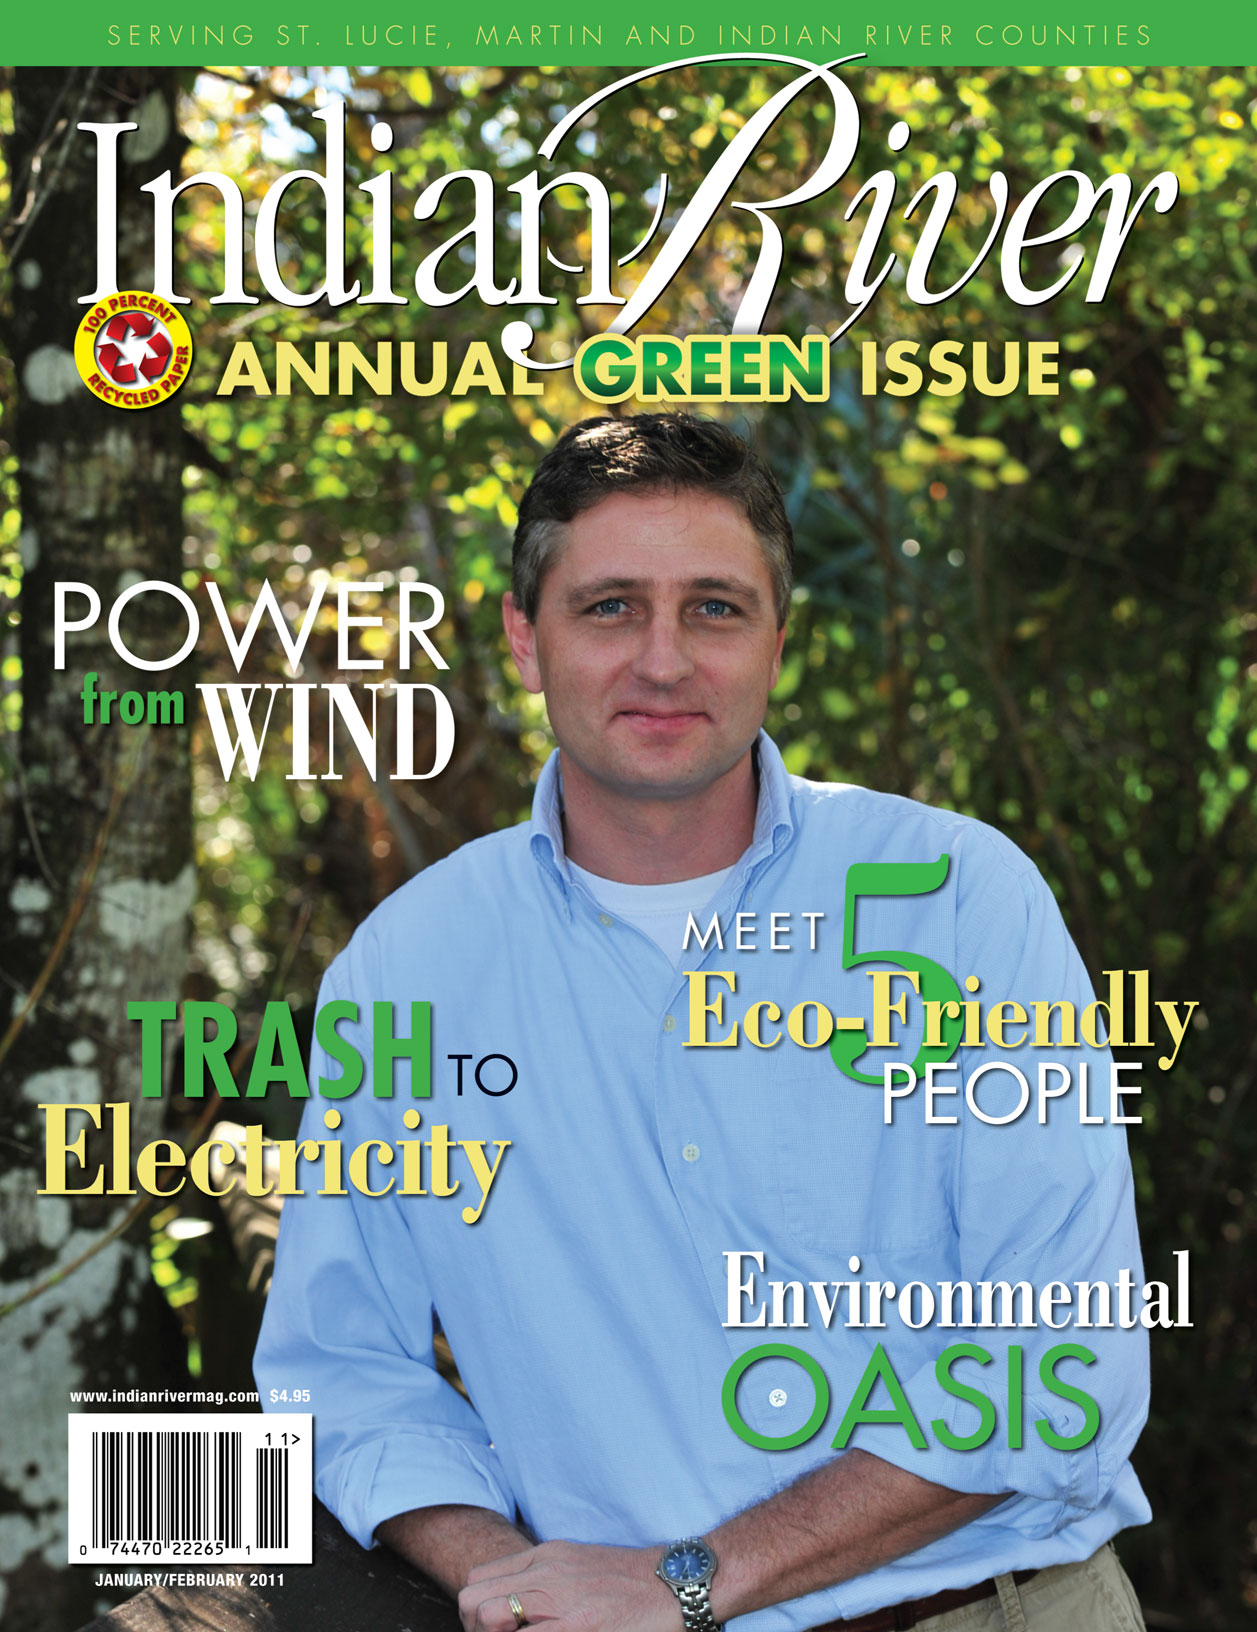 December 2010 Holiday Issue